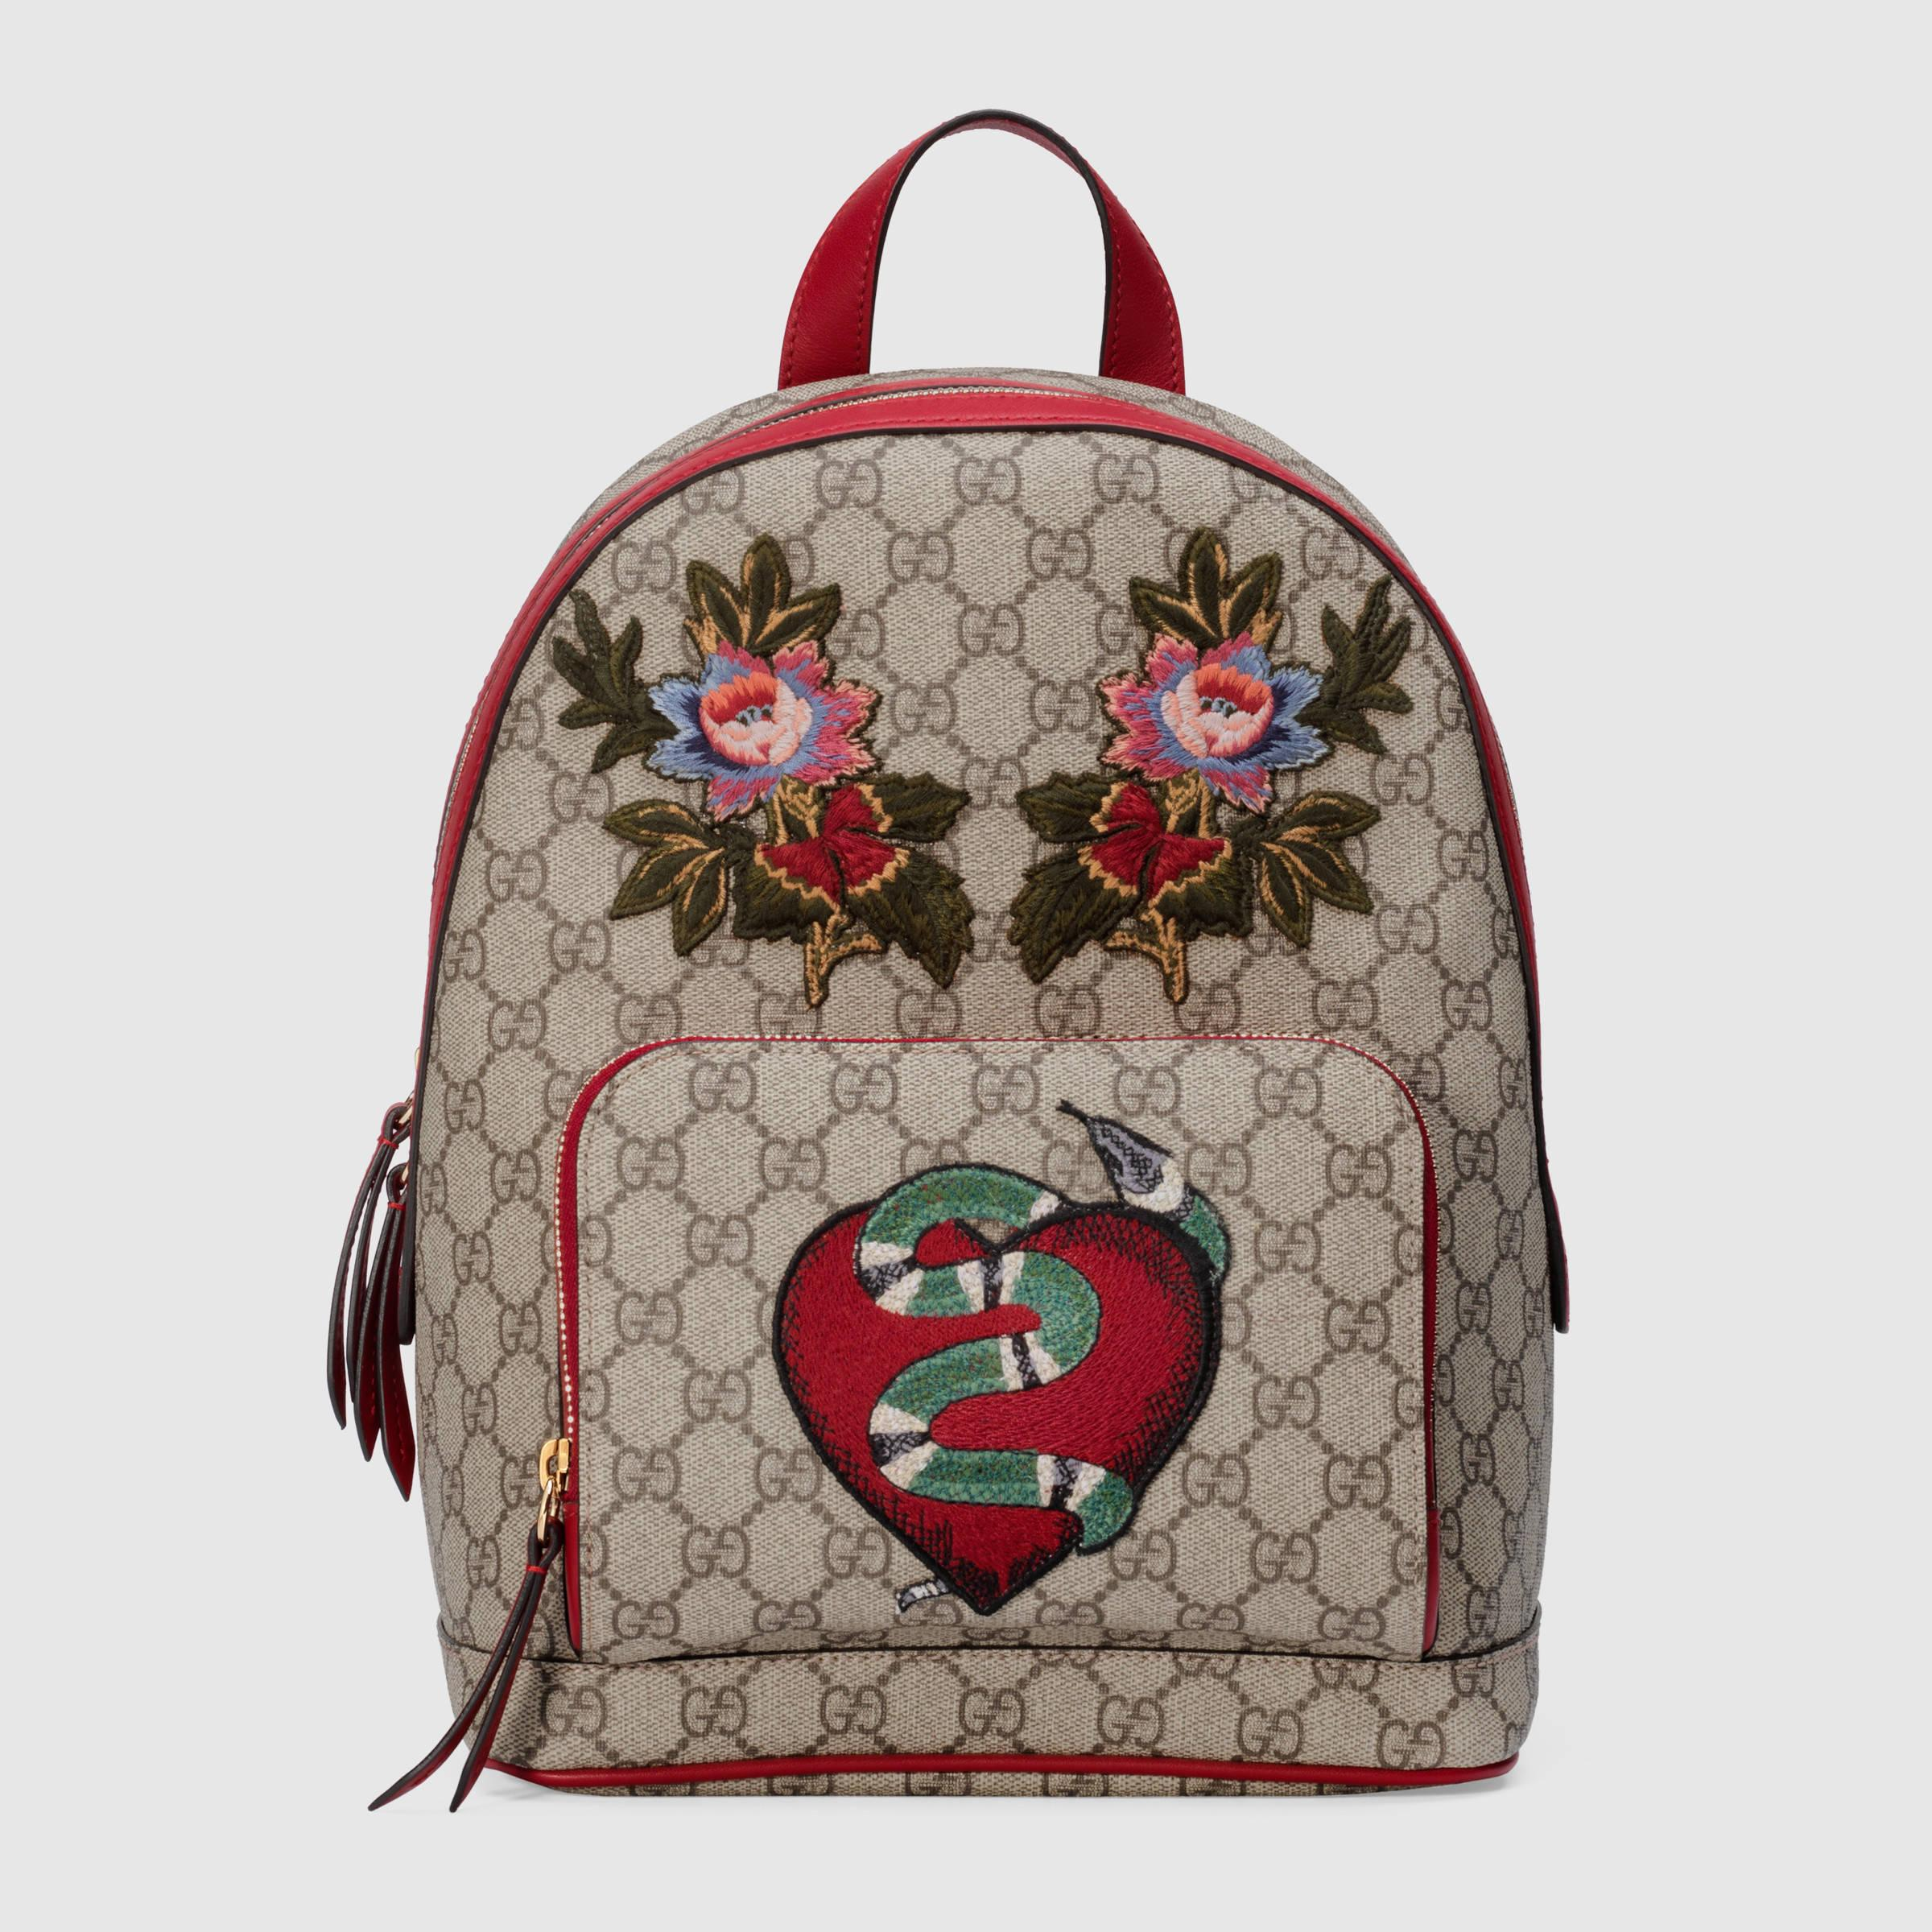 38f07e1449a Lyst - Gucci Limited Edition Gg Supreme Backpack